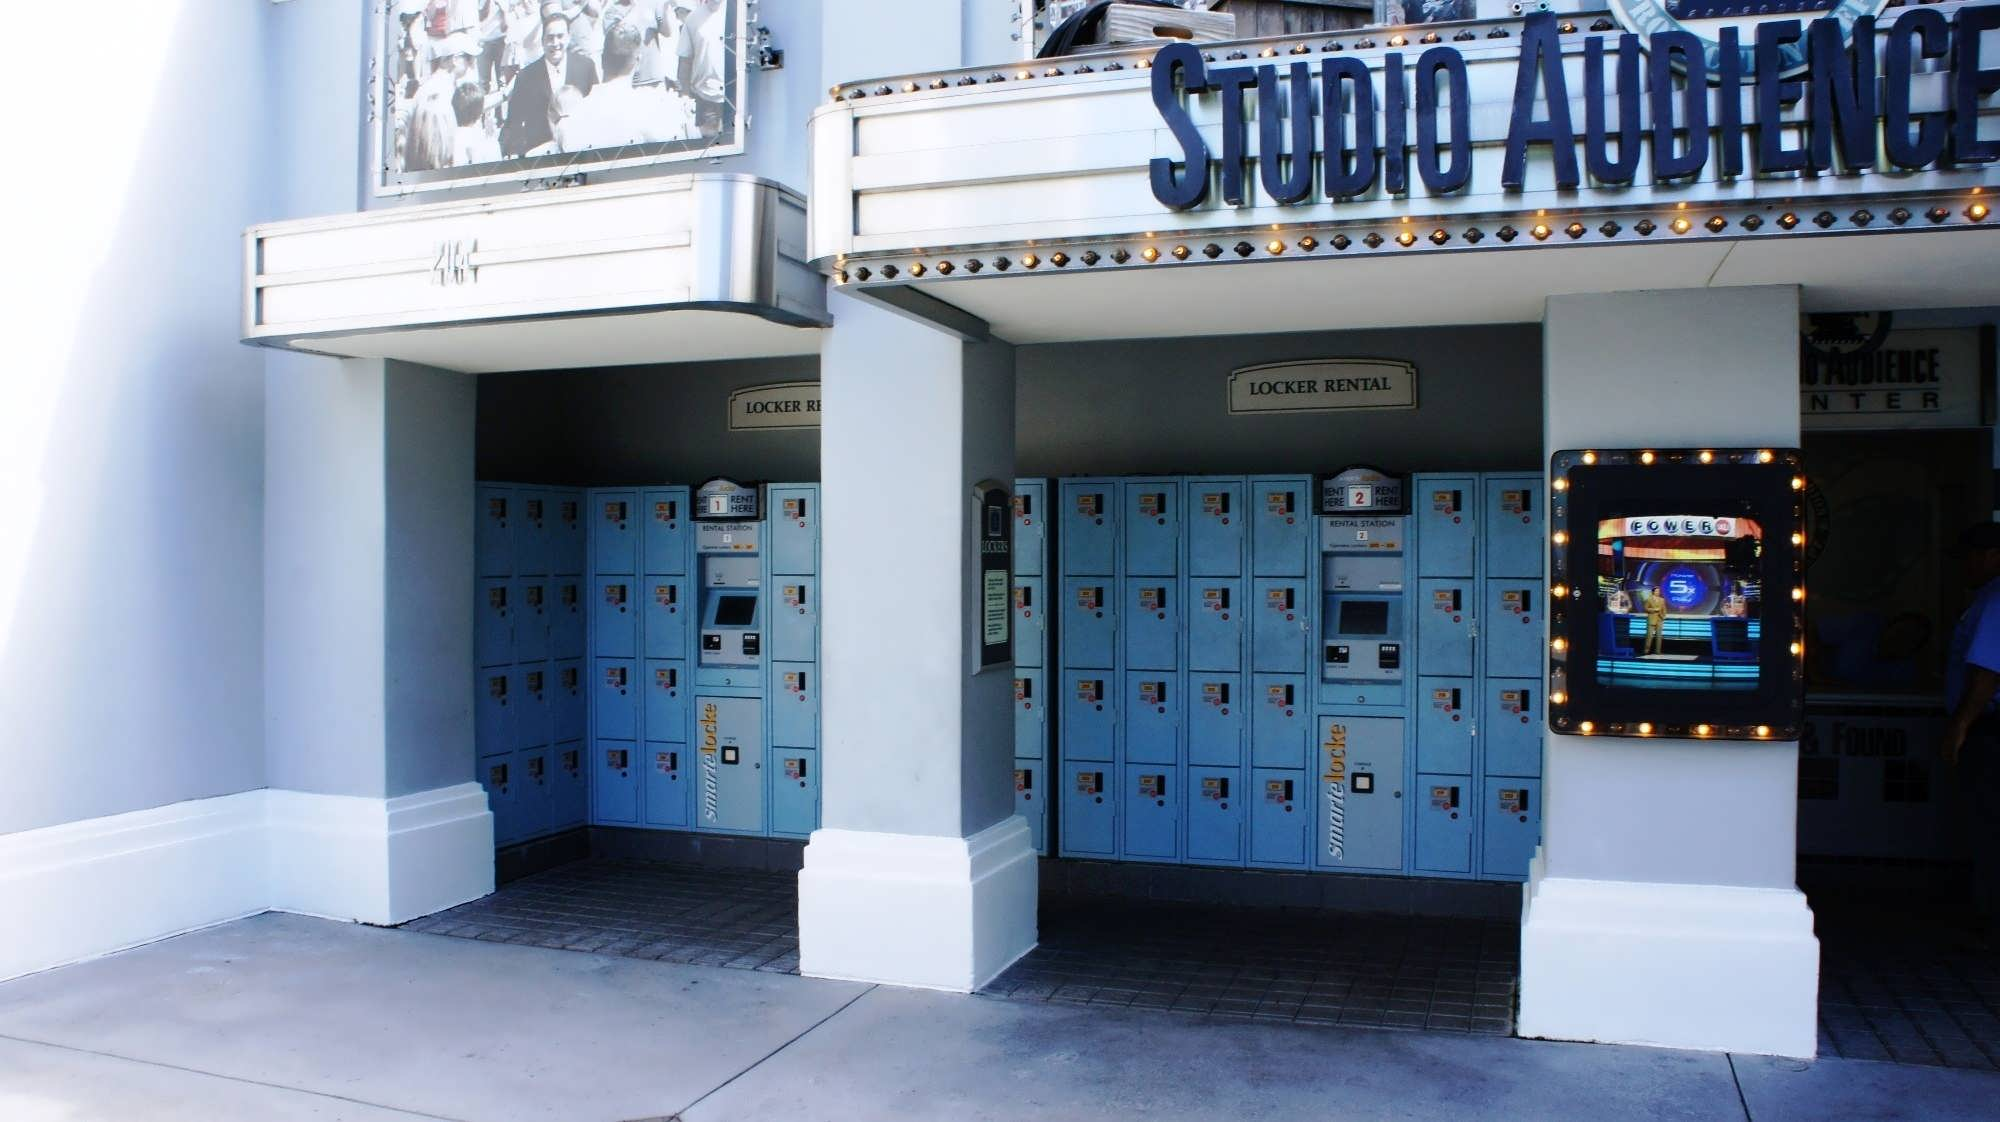 USF lockers – Set 3. Inside the park, to the right by the Studio Audience Center.